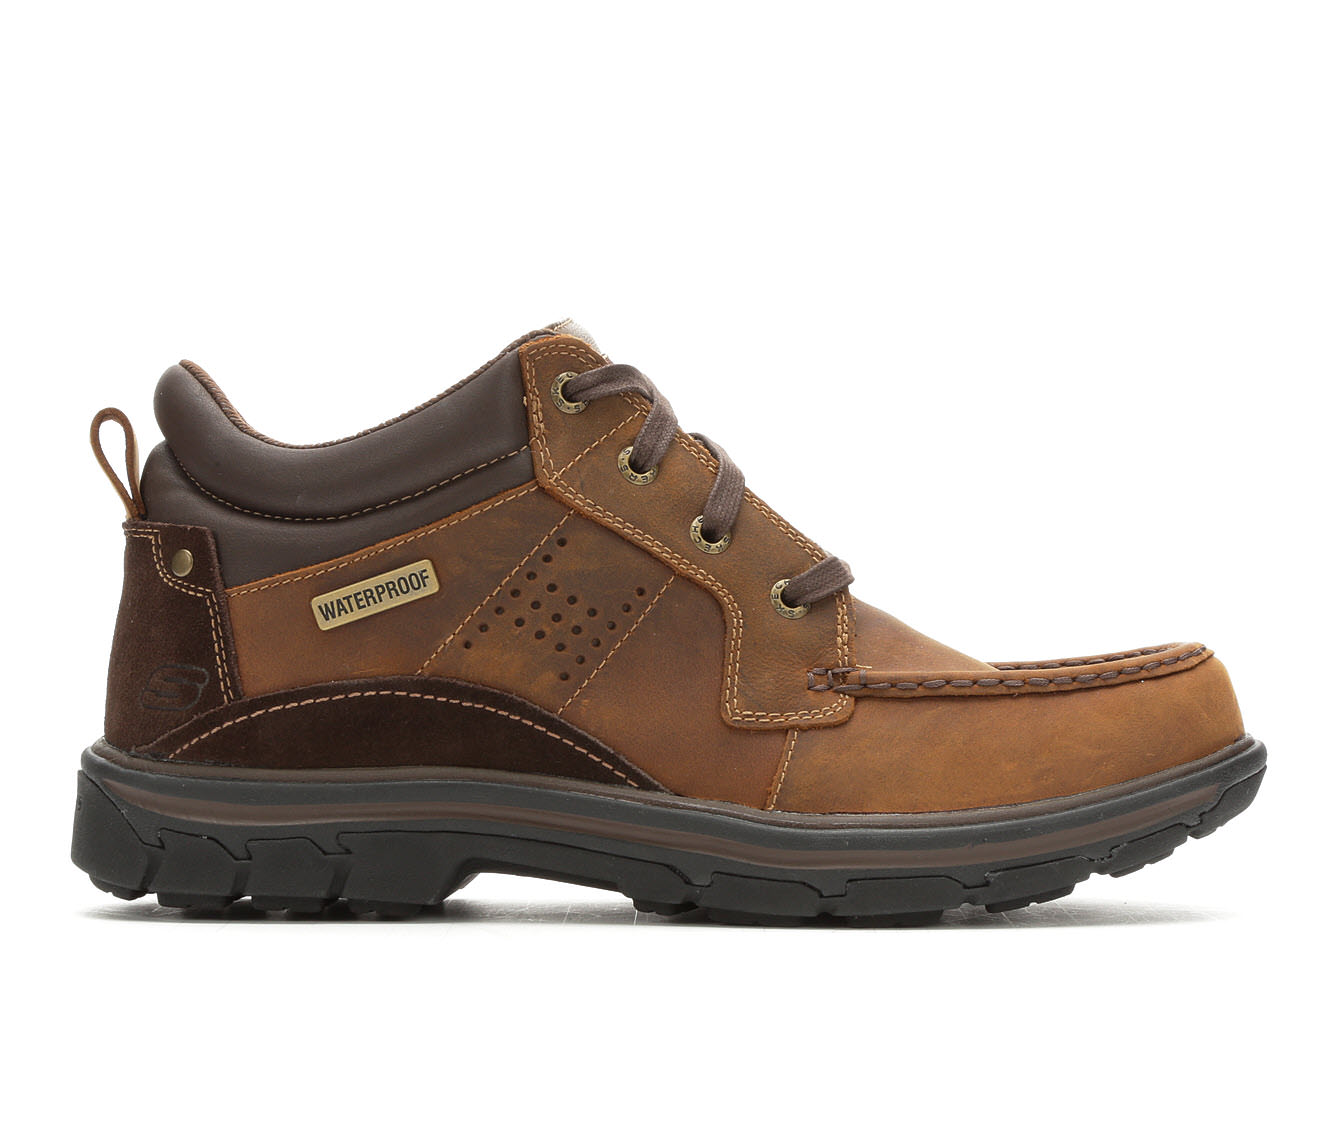 Skechers Melego 64522 Men's Boots (Brown Leather)